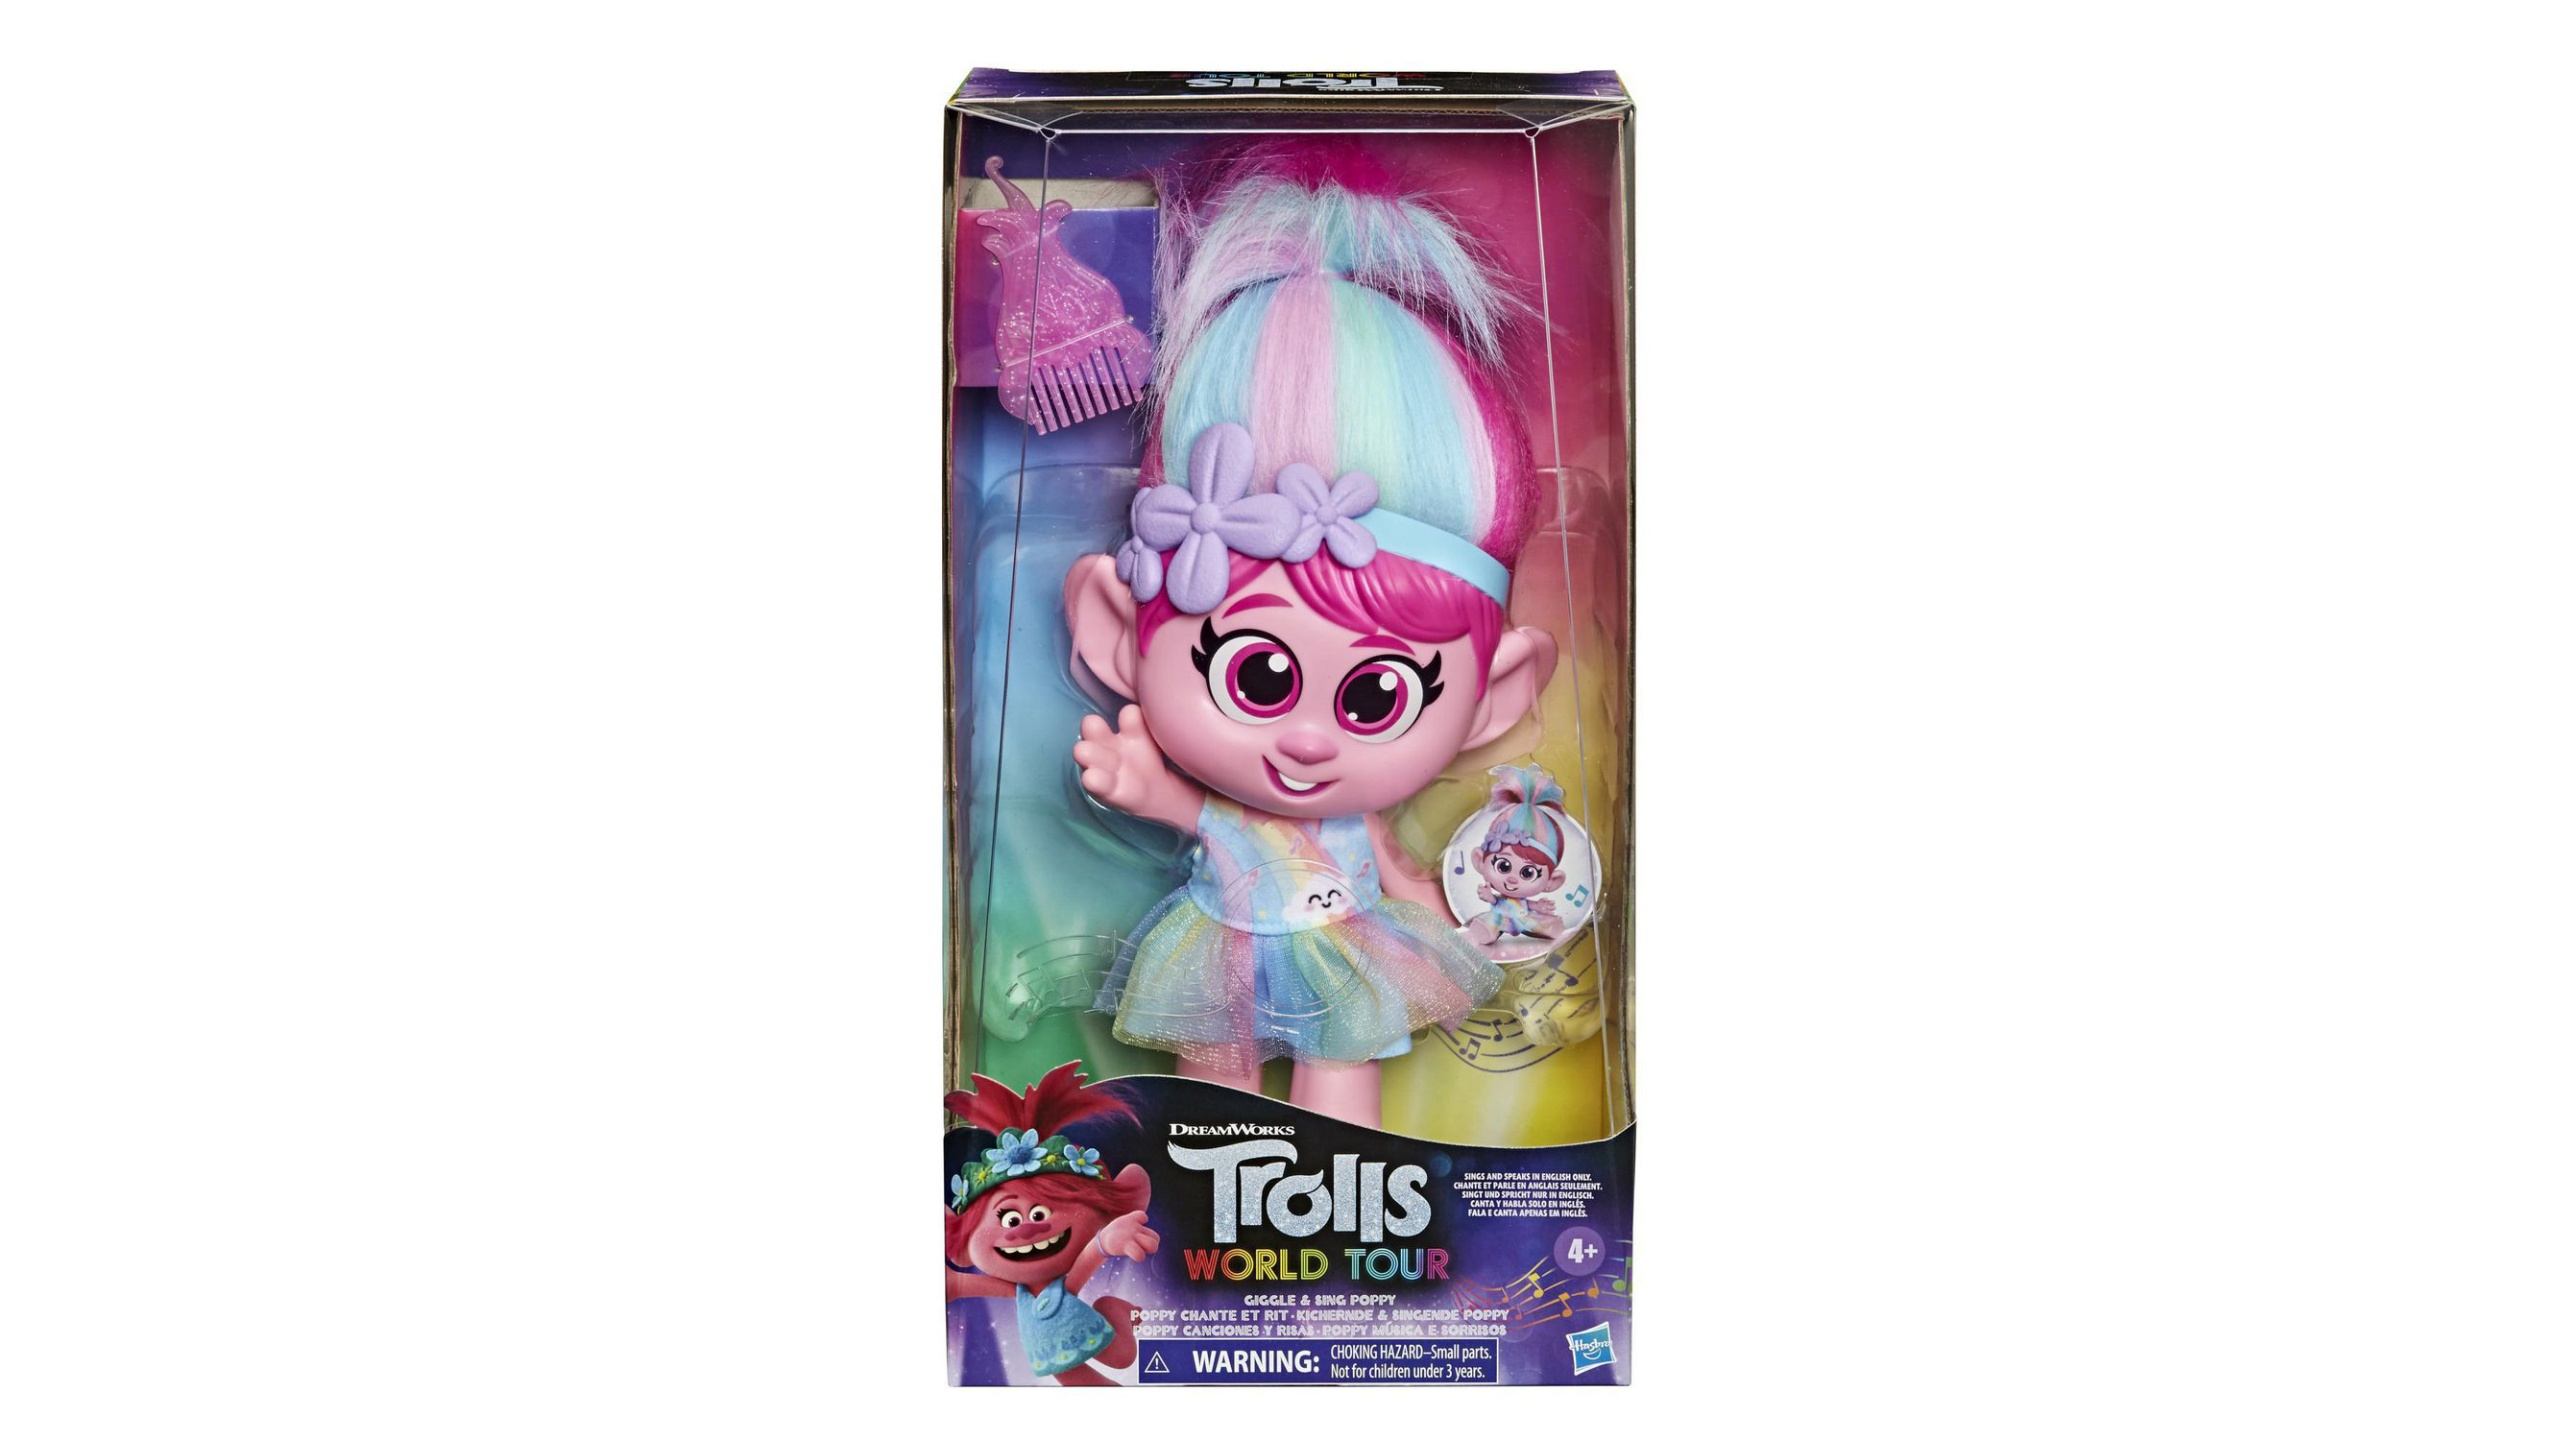 Picture of 'Trolls World Tour Giggle and Sing Poppy' doll